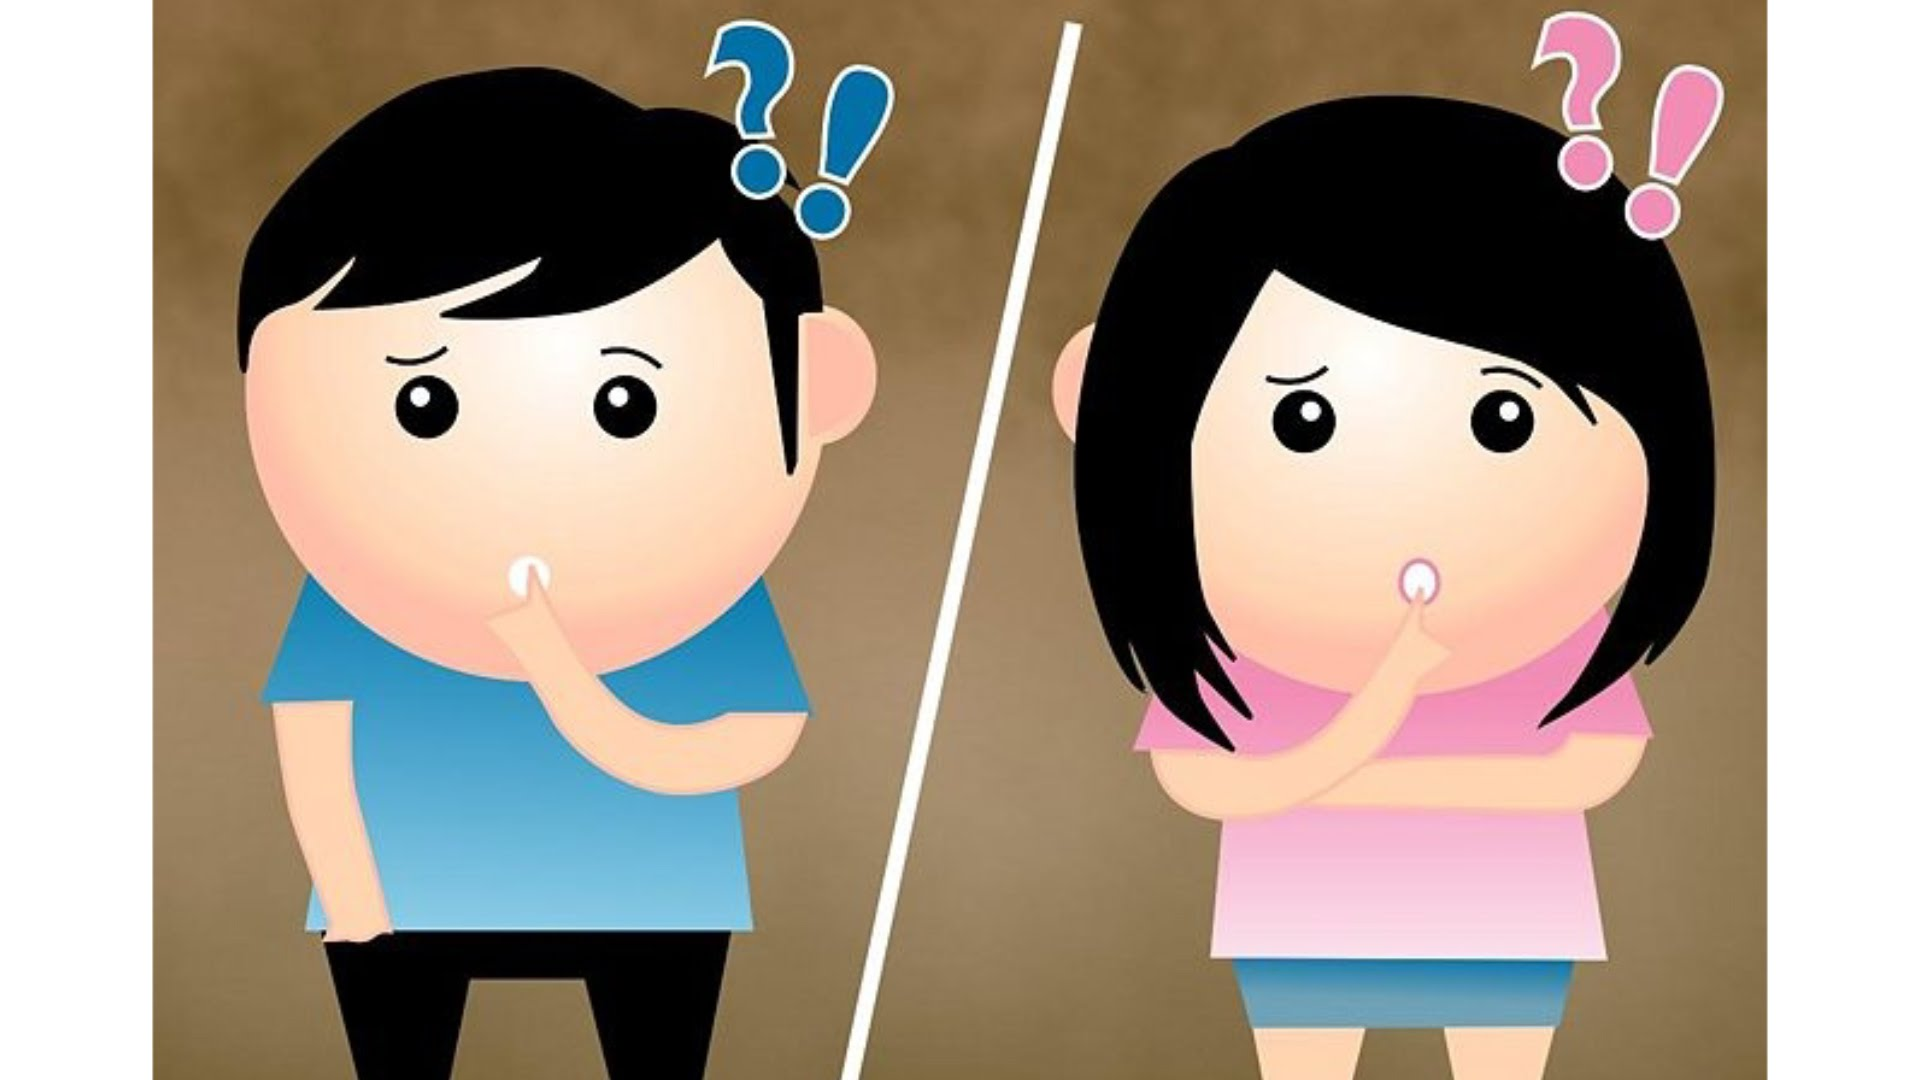 Bad clipart bad friendship. Can men and women